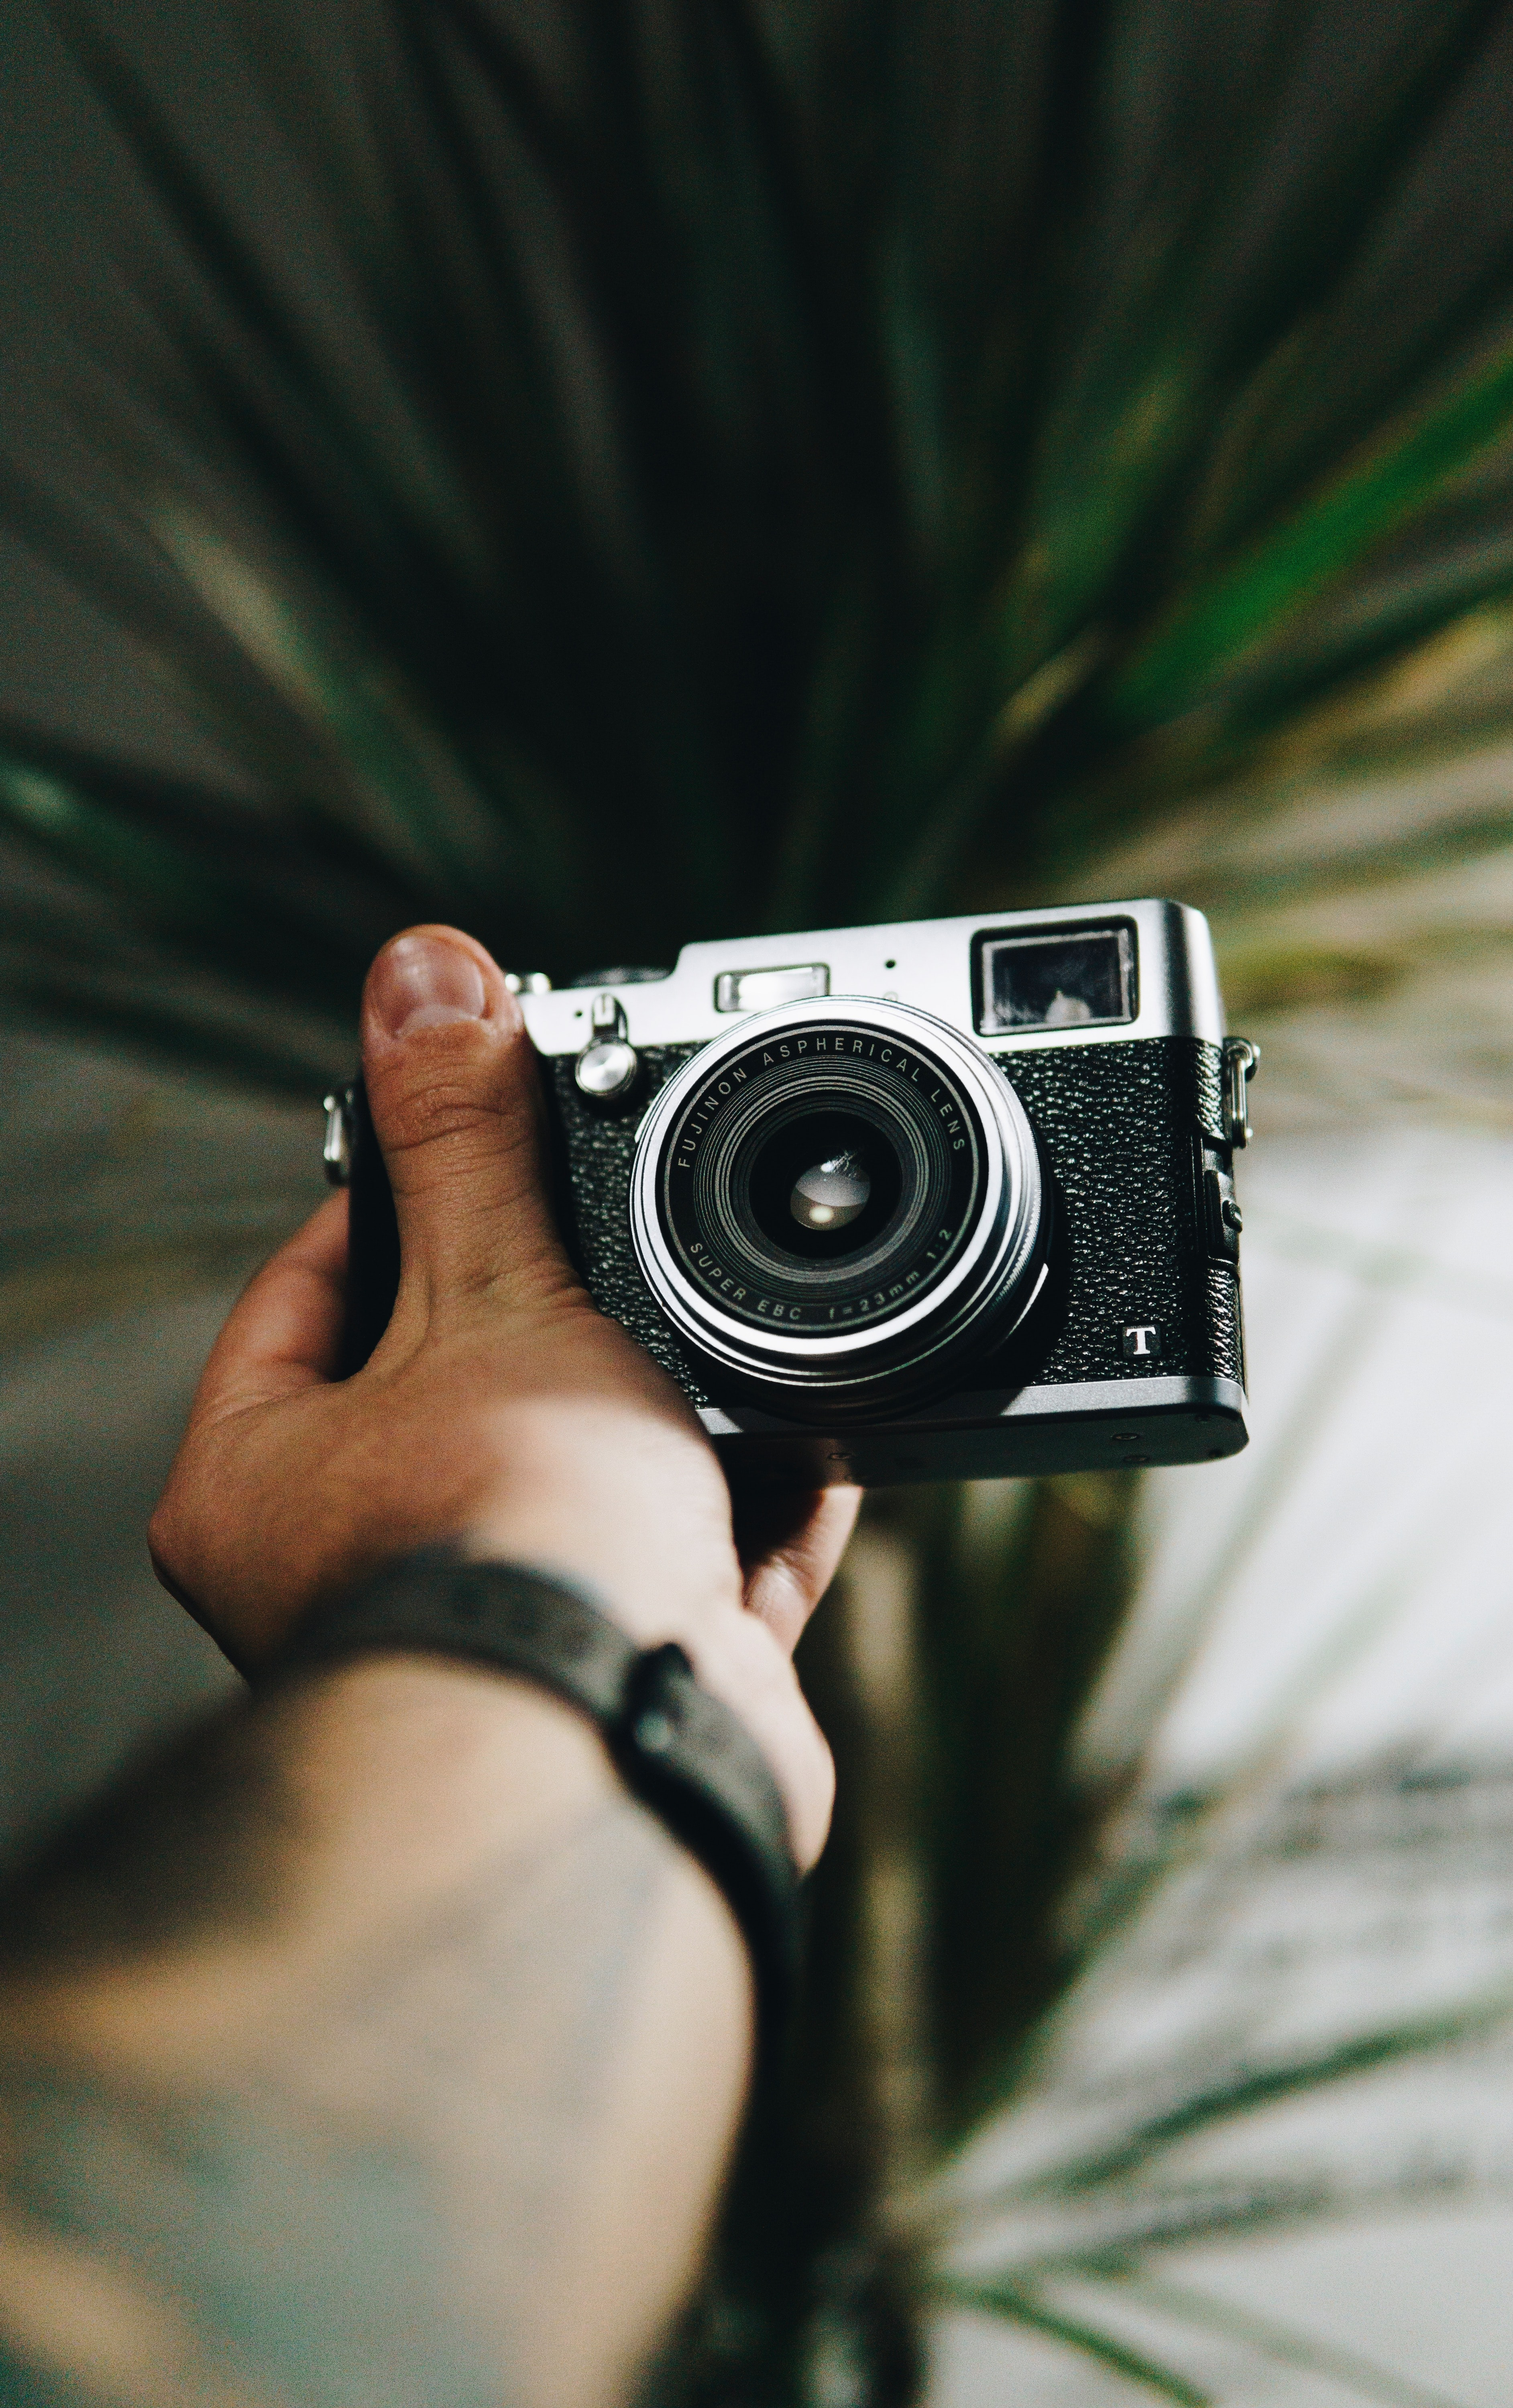 person holding black and gray SLR camera